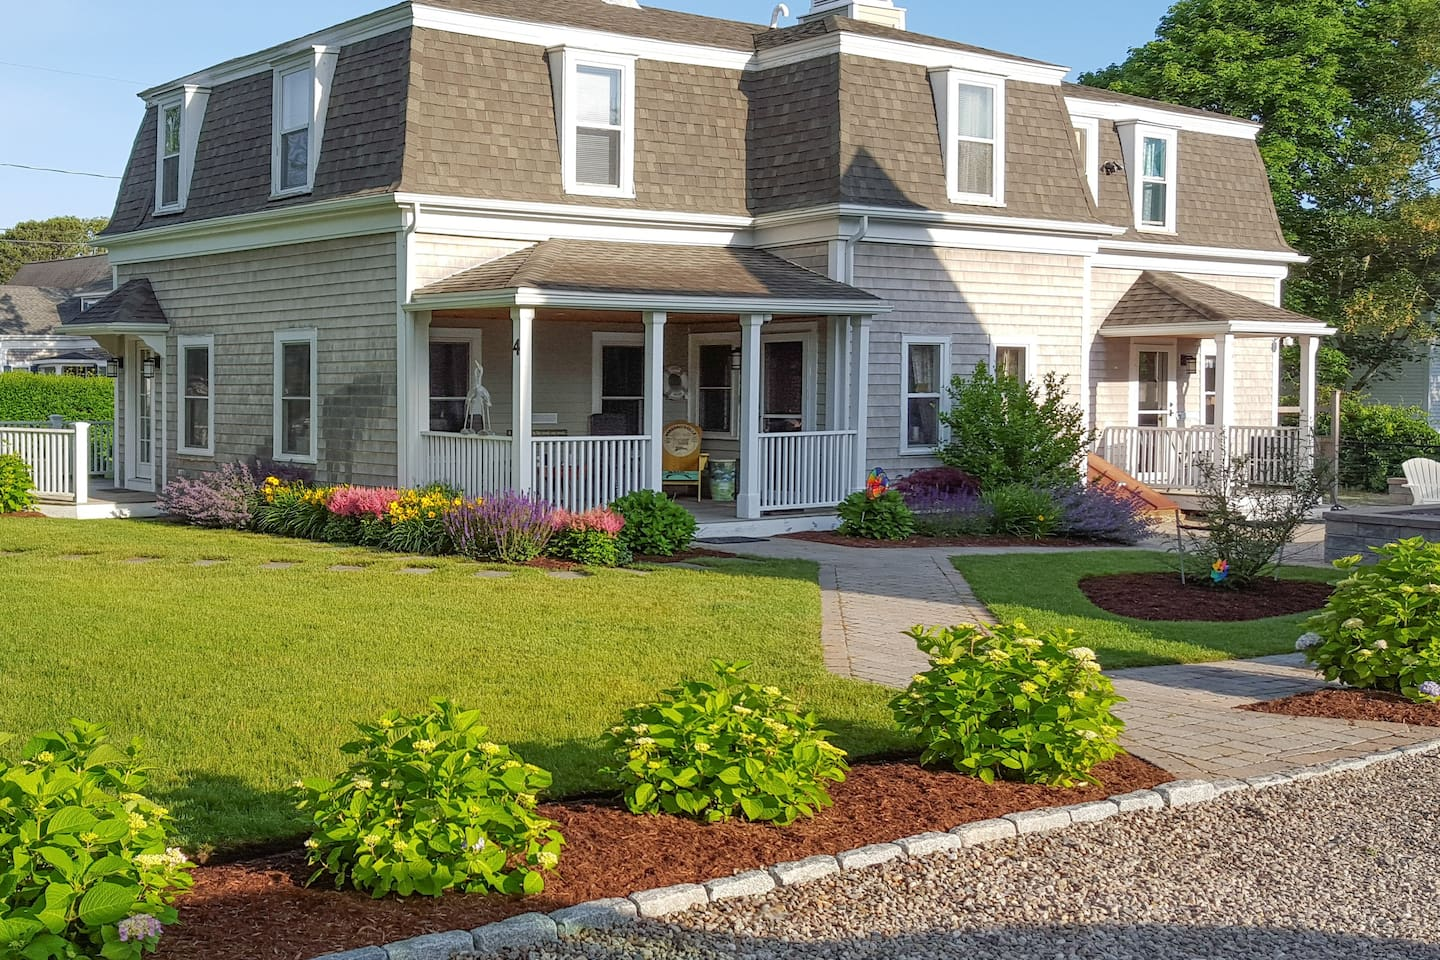 Welcome to West Dennis! This home is professionally managed by TurnKey Vacation Rentals.